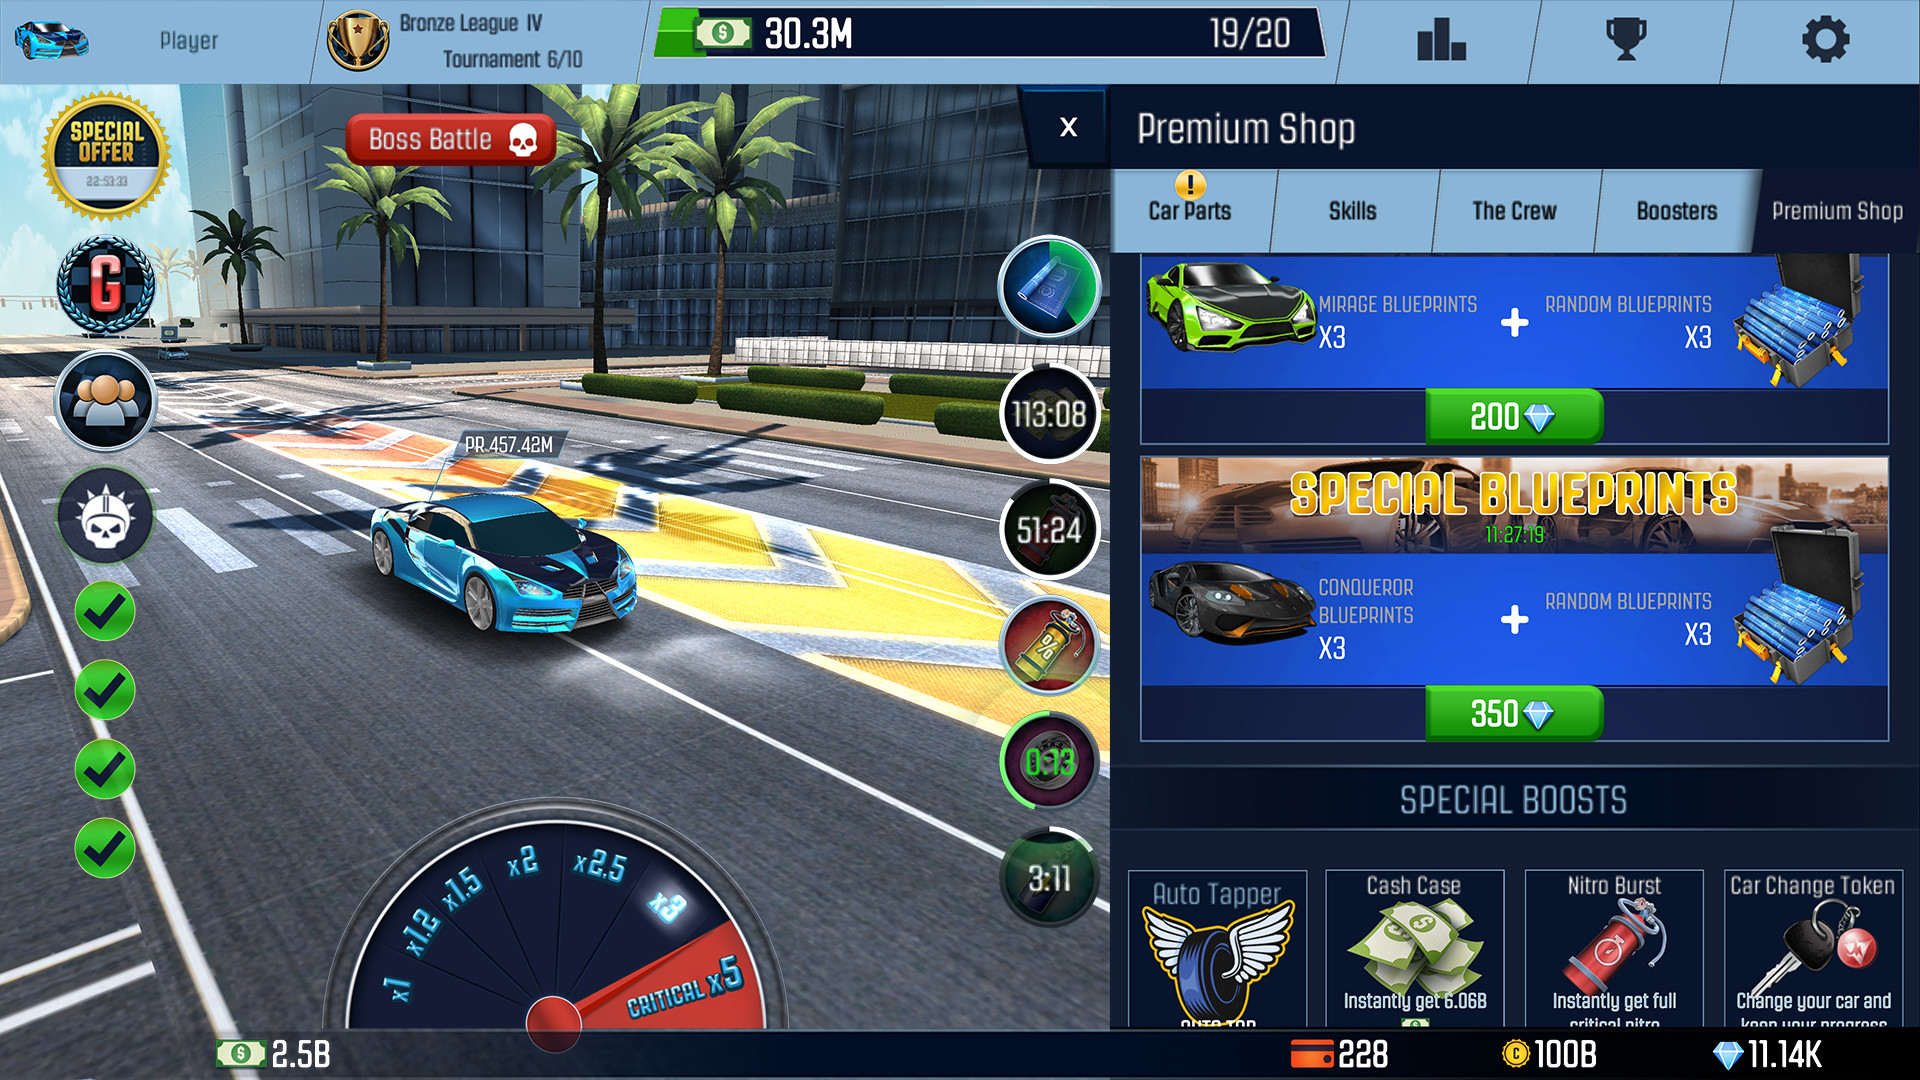 Idle Racing GO: Clicker Tycoon on Steam